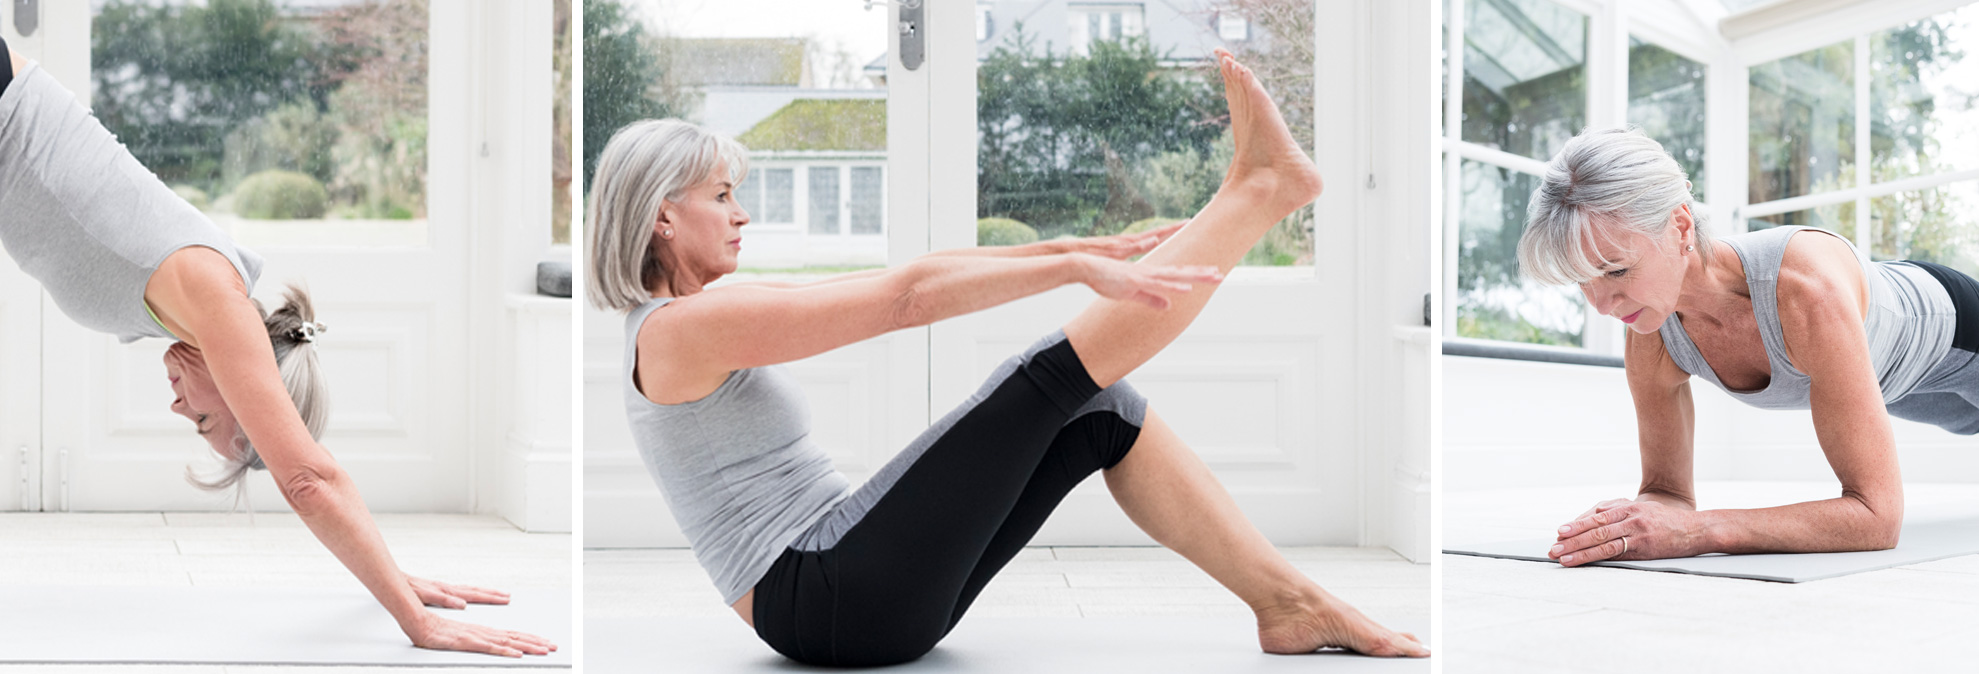 Alternative Treatments for Arthritis: What Works, What Doesn't